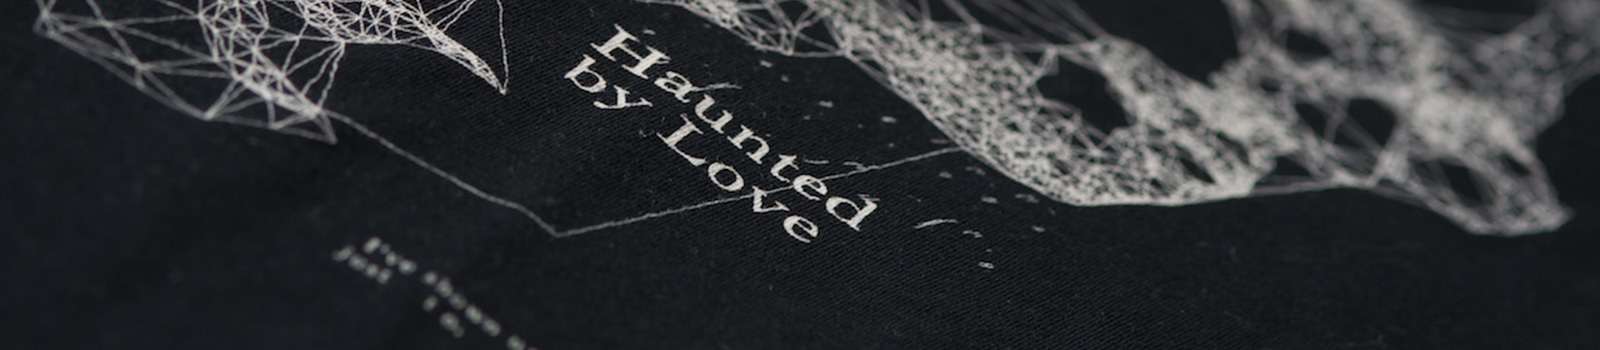 Dominique Fricot Chords And Lyrics For Haunted By Love